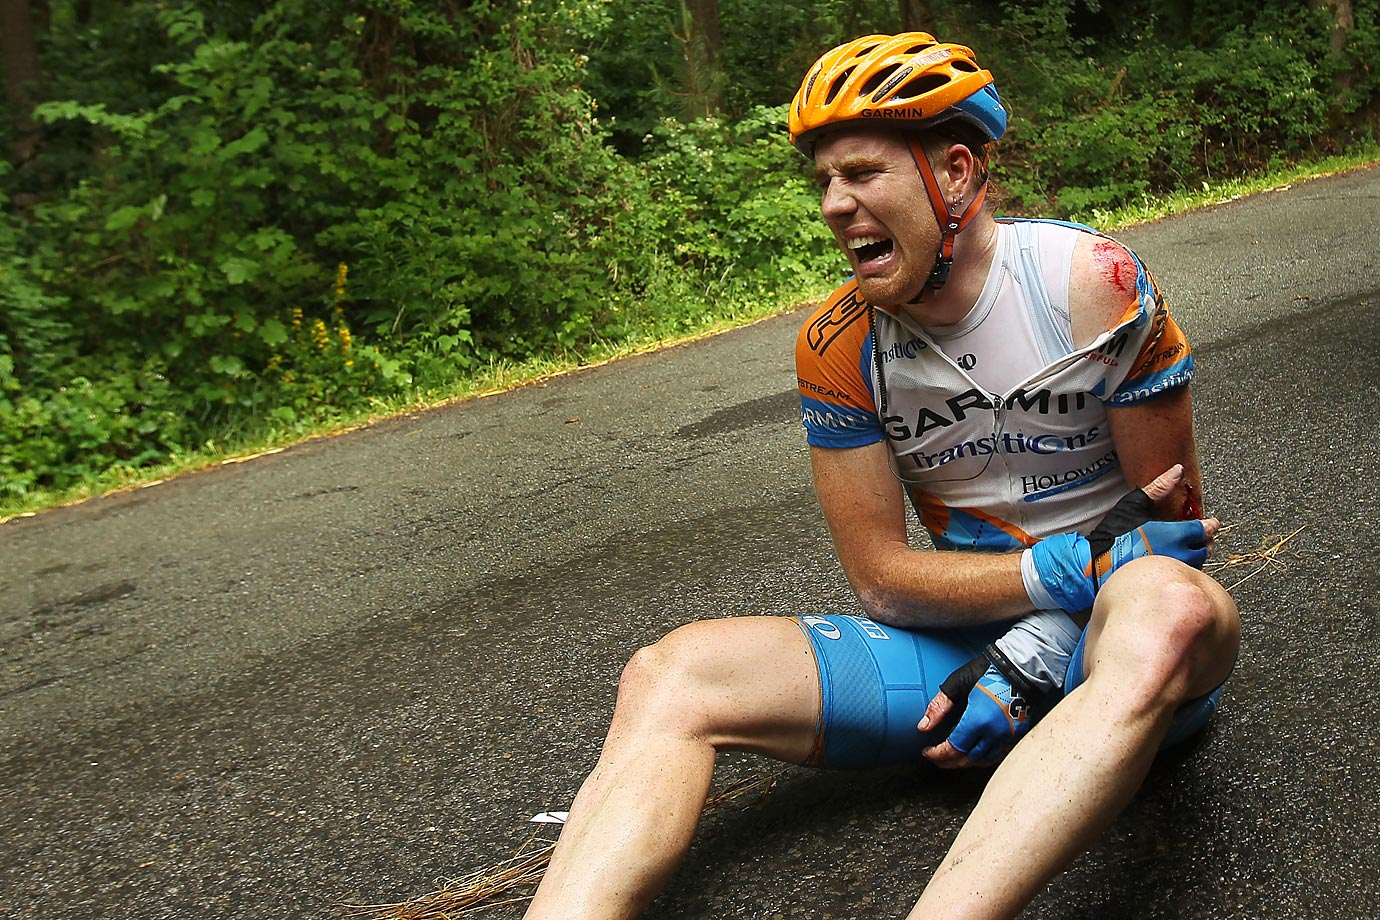 Sprinter Tyler Farrar was one of four Garmin-Transition riders to break bones in the 2010 Tour. In this Stage 2 crash in Spa, Belgium, the American sprained his left elbow, fractured his left wrist and suffered multiple other contusions and abrasions. He raced another week and a half before the pain forced him out of the Tour.